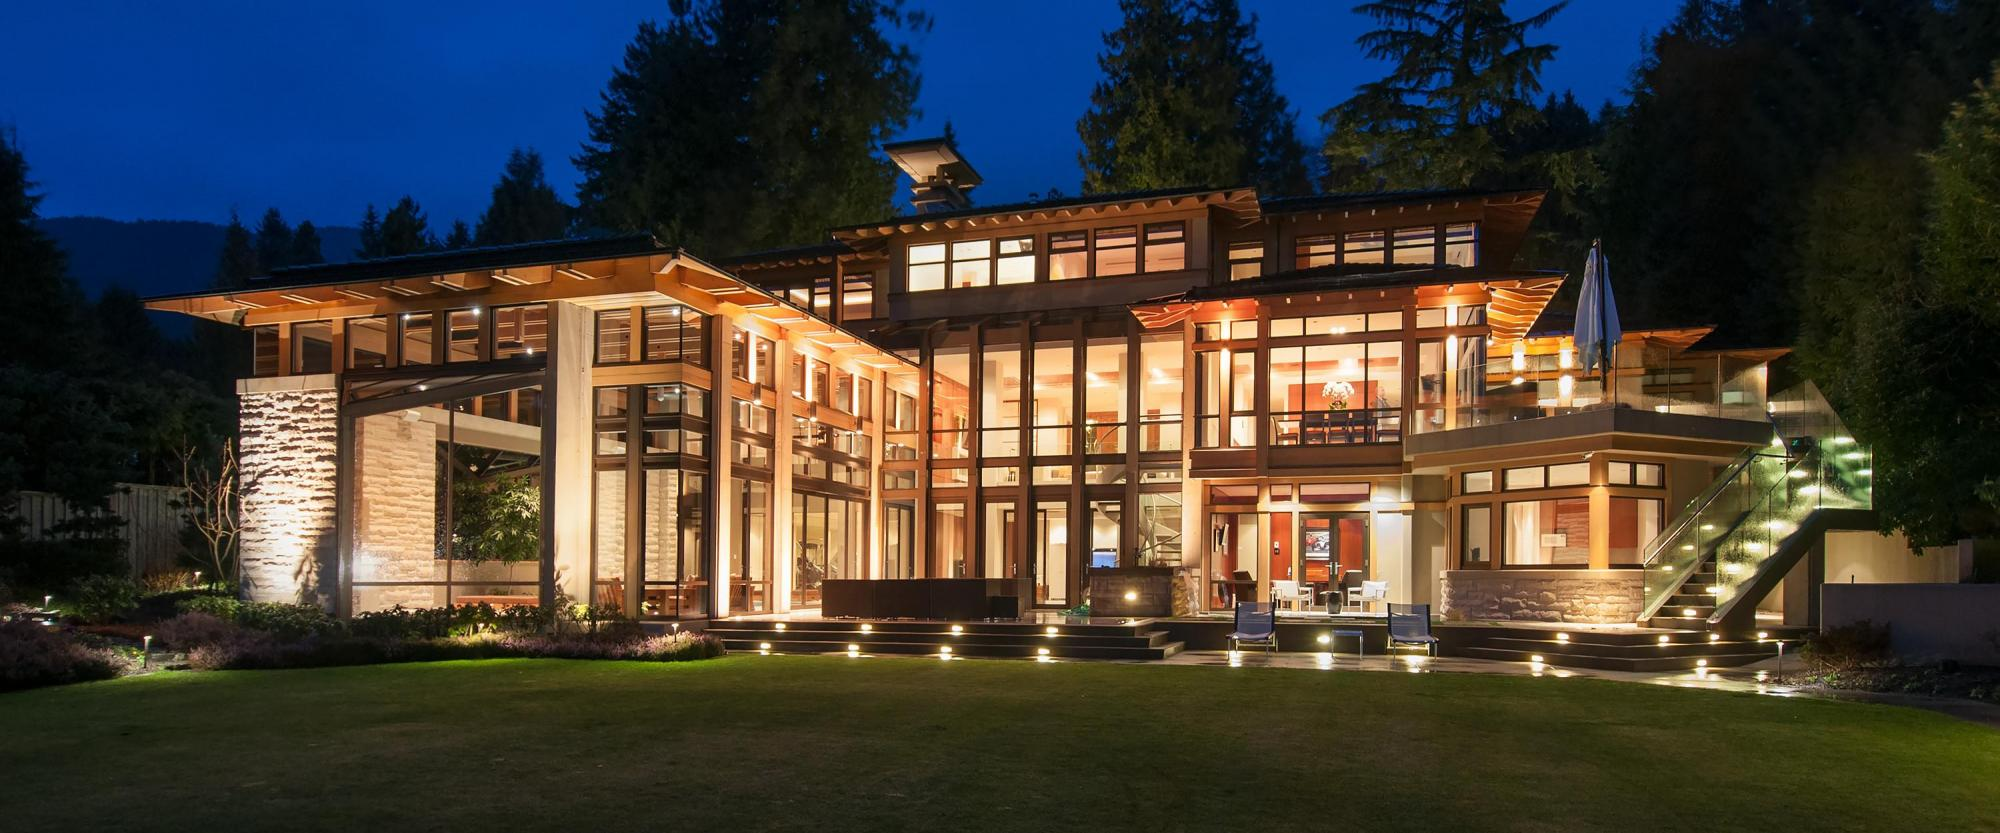 west vancouver real estate amp luxury homes   brock smeaton